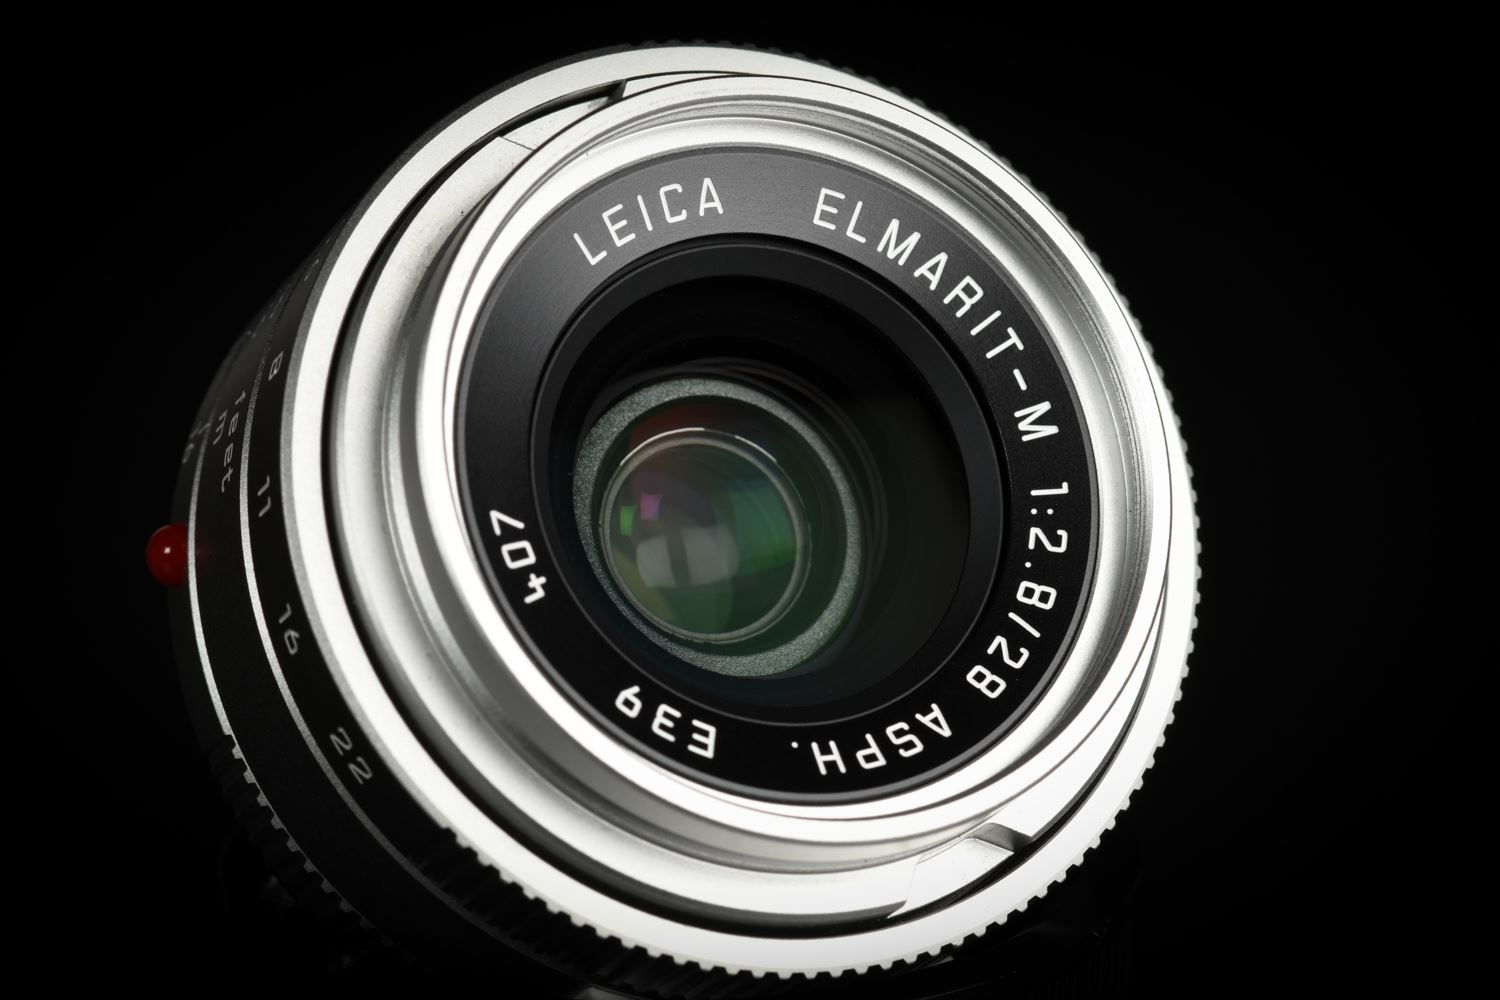 Picture of Leica Elmarit-M 28mm f/2.8 ASPH Silver, The White Edition